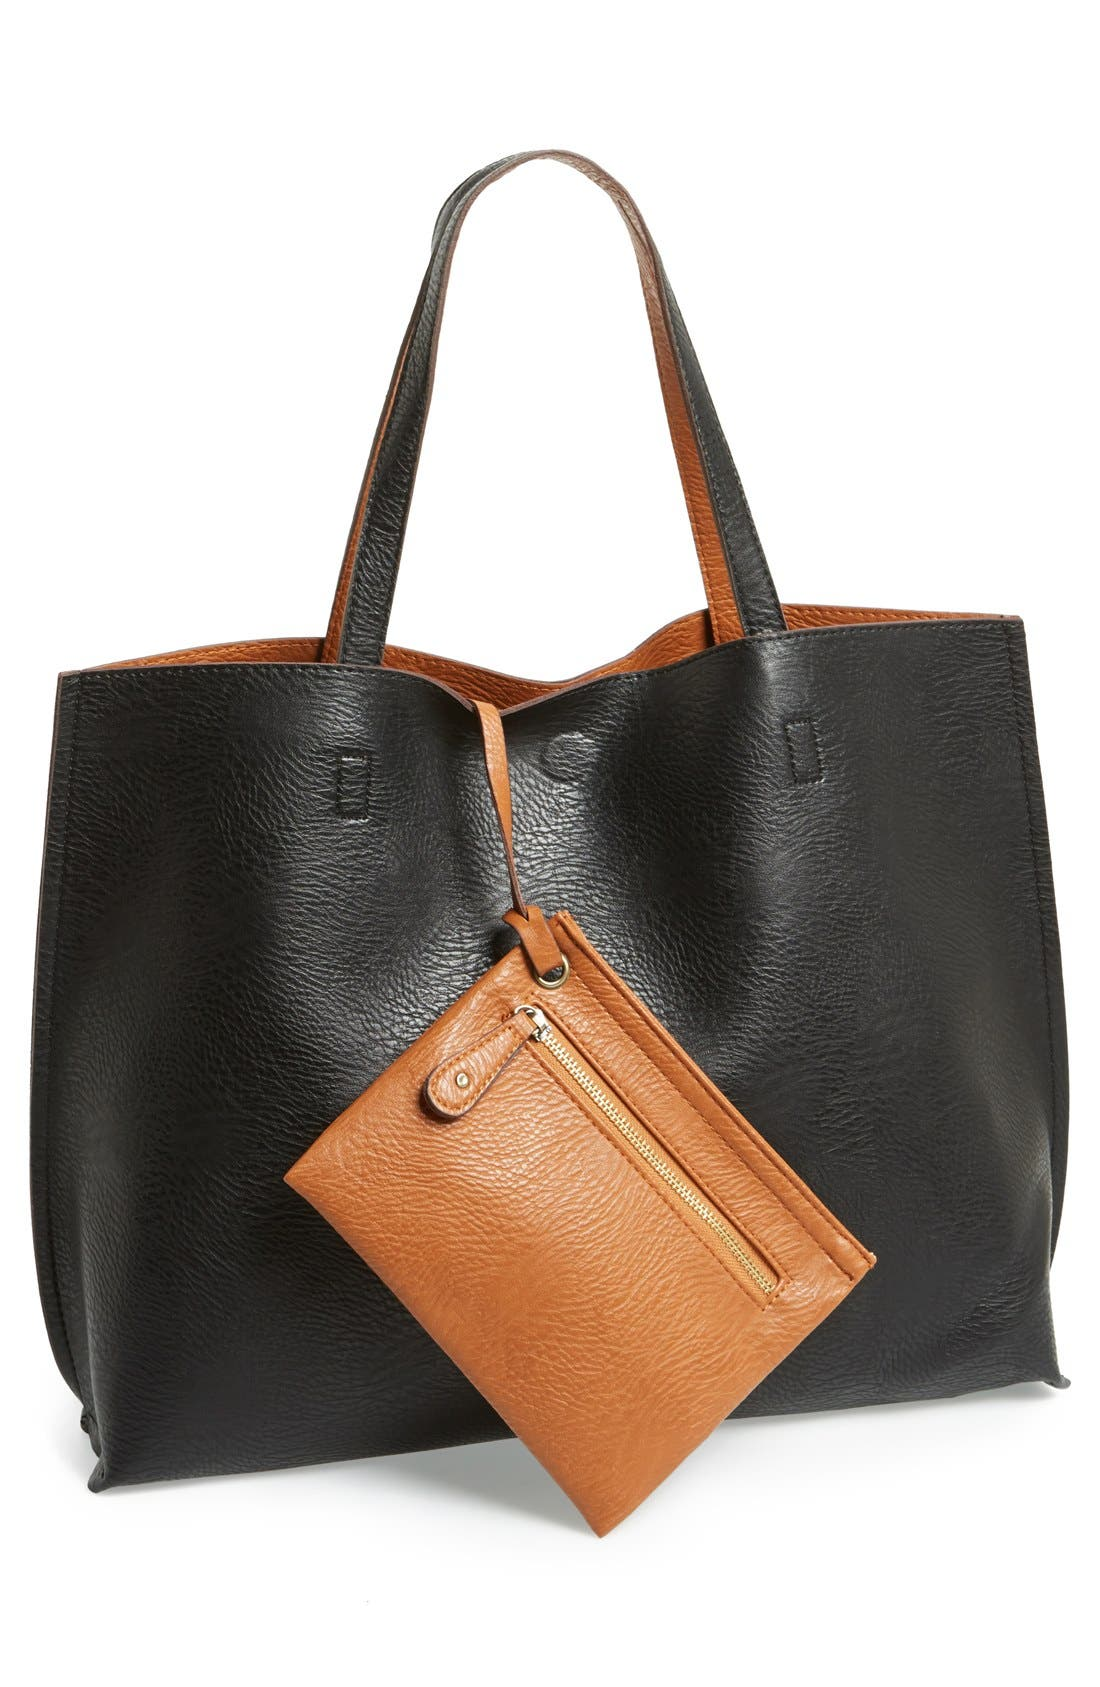 Reversible Faux Leather Tote & Wristlet,                         Main,                         color, BLACK/ COGNAC